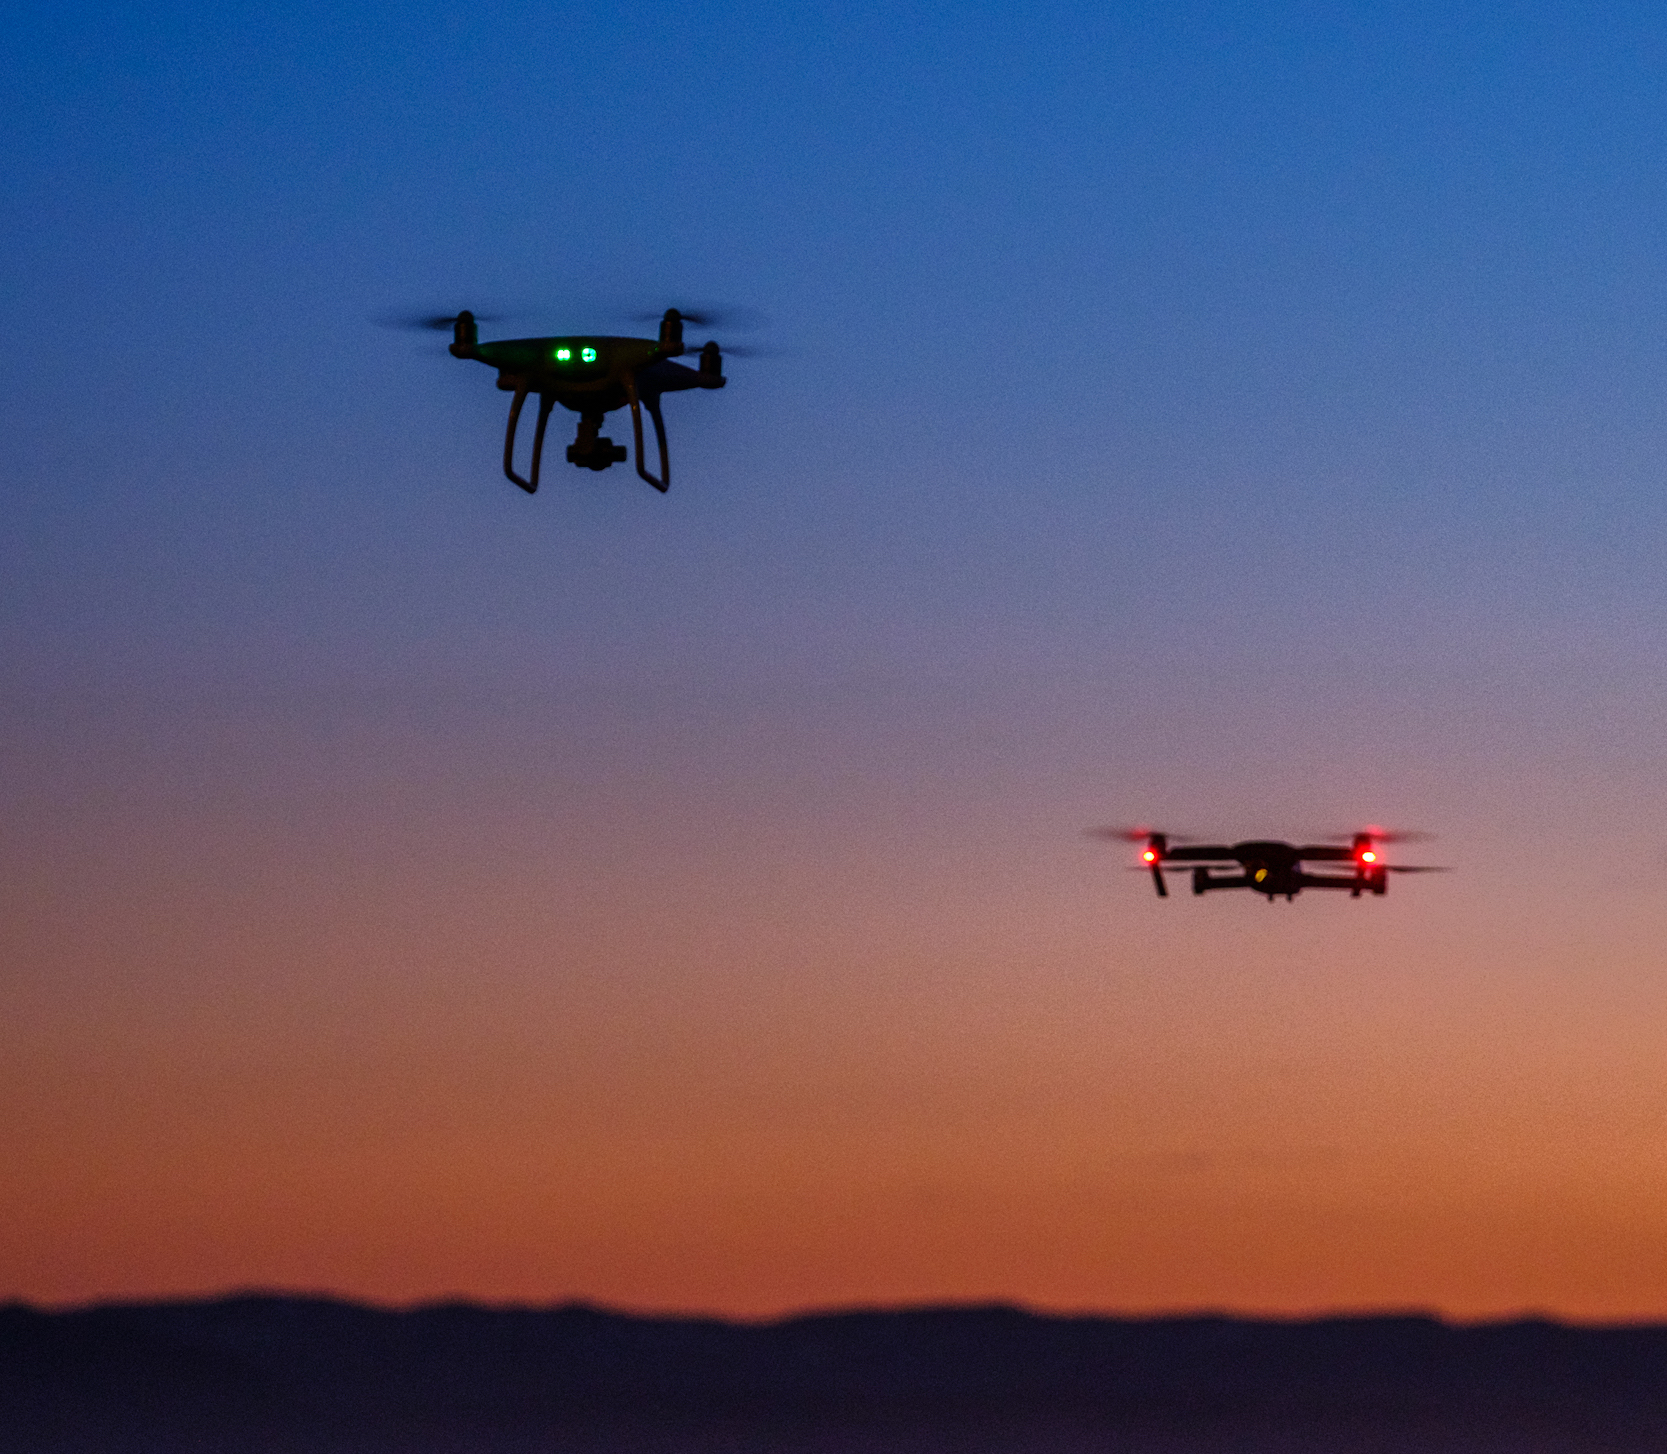 Drone with microphones to monitor human screams in disasters